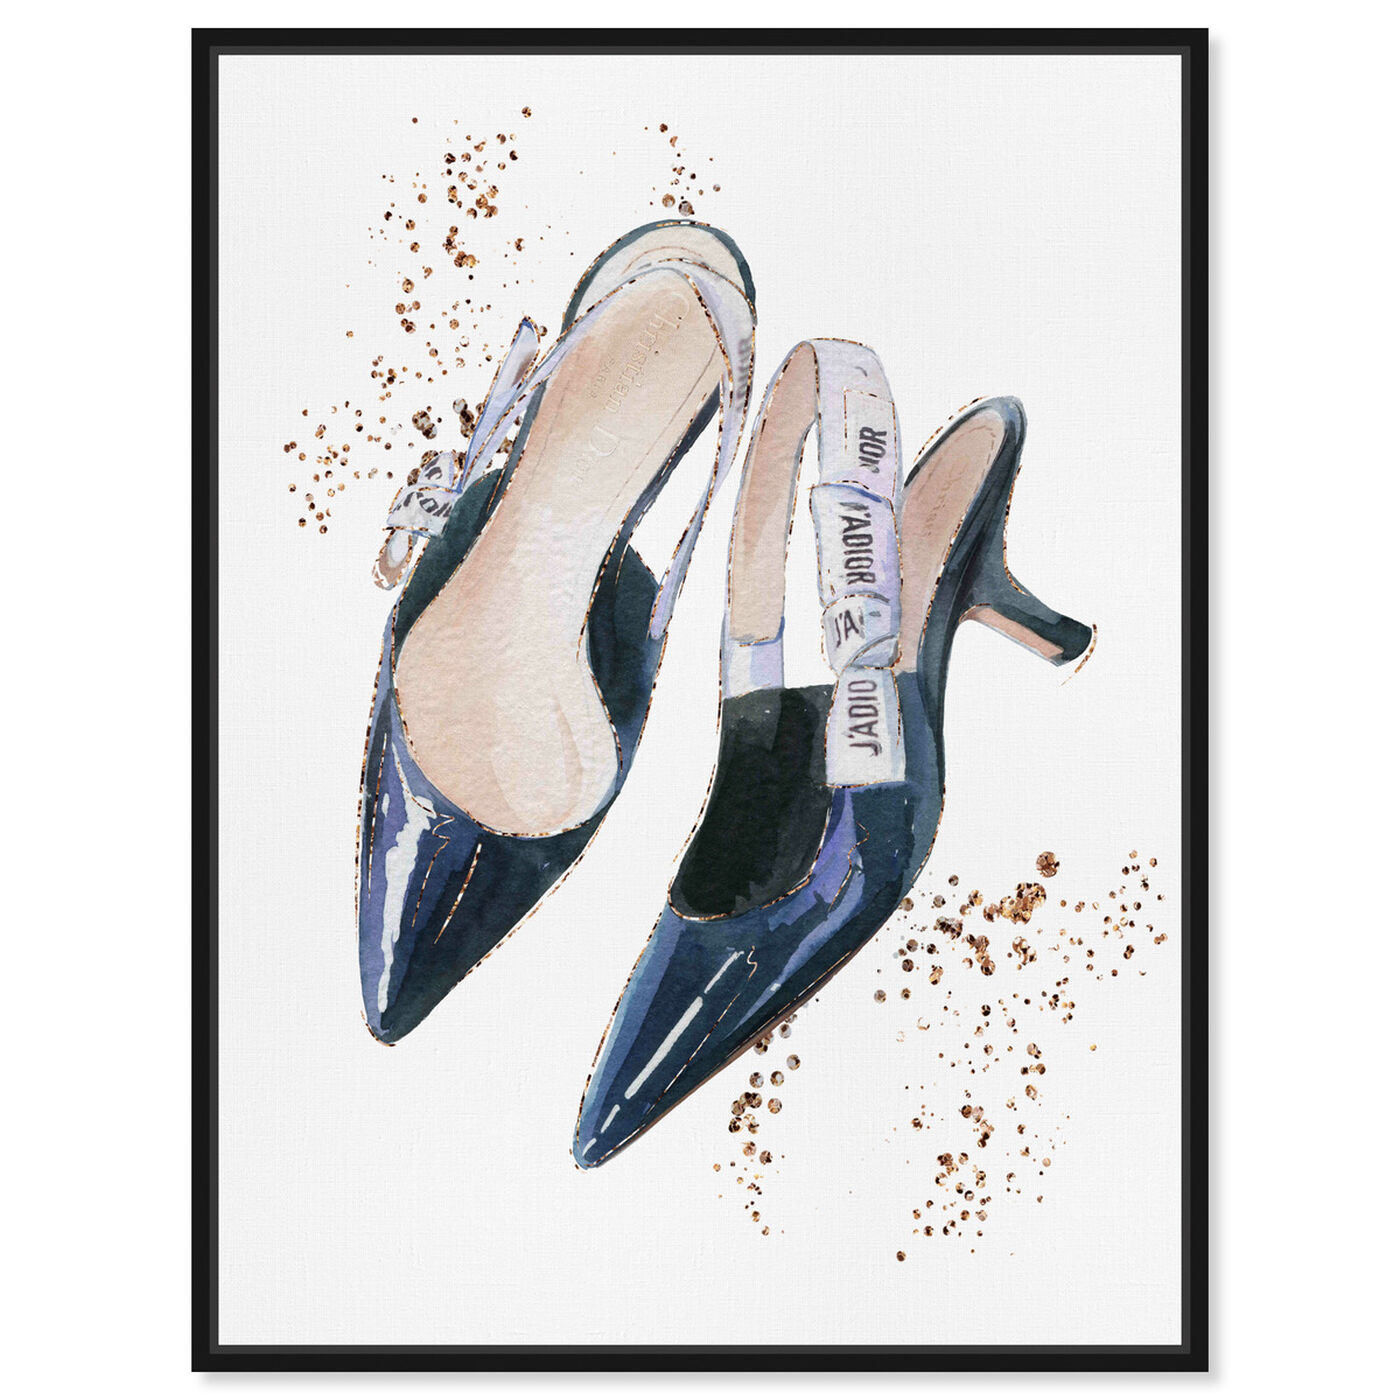 Front view of I adore my daily shoes featuring fashion and glam and shoes art.